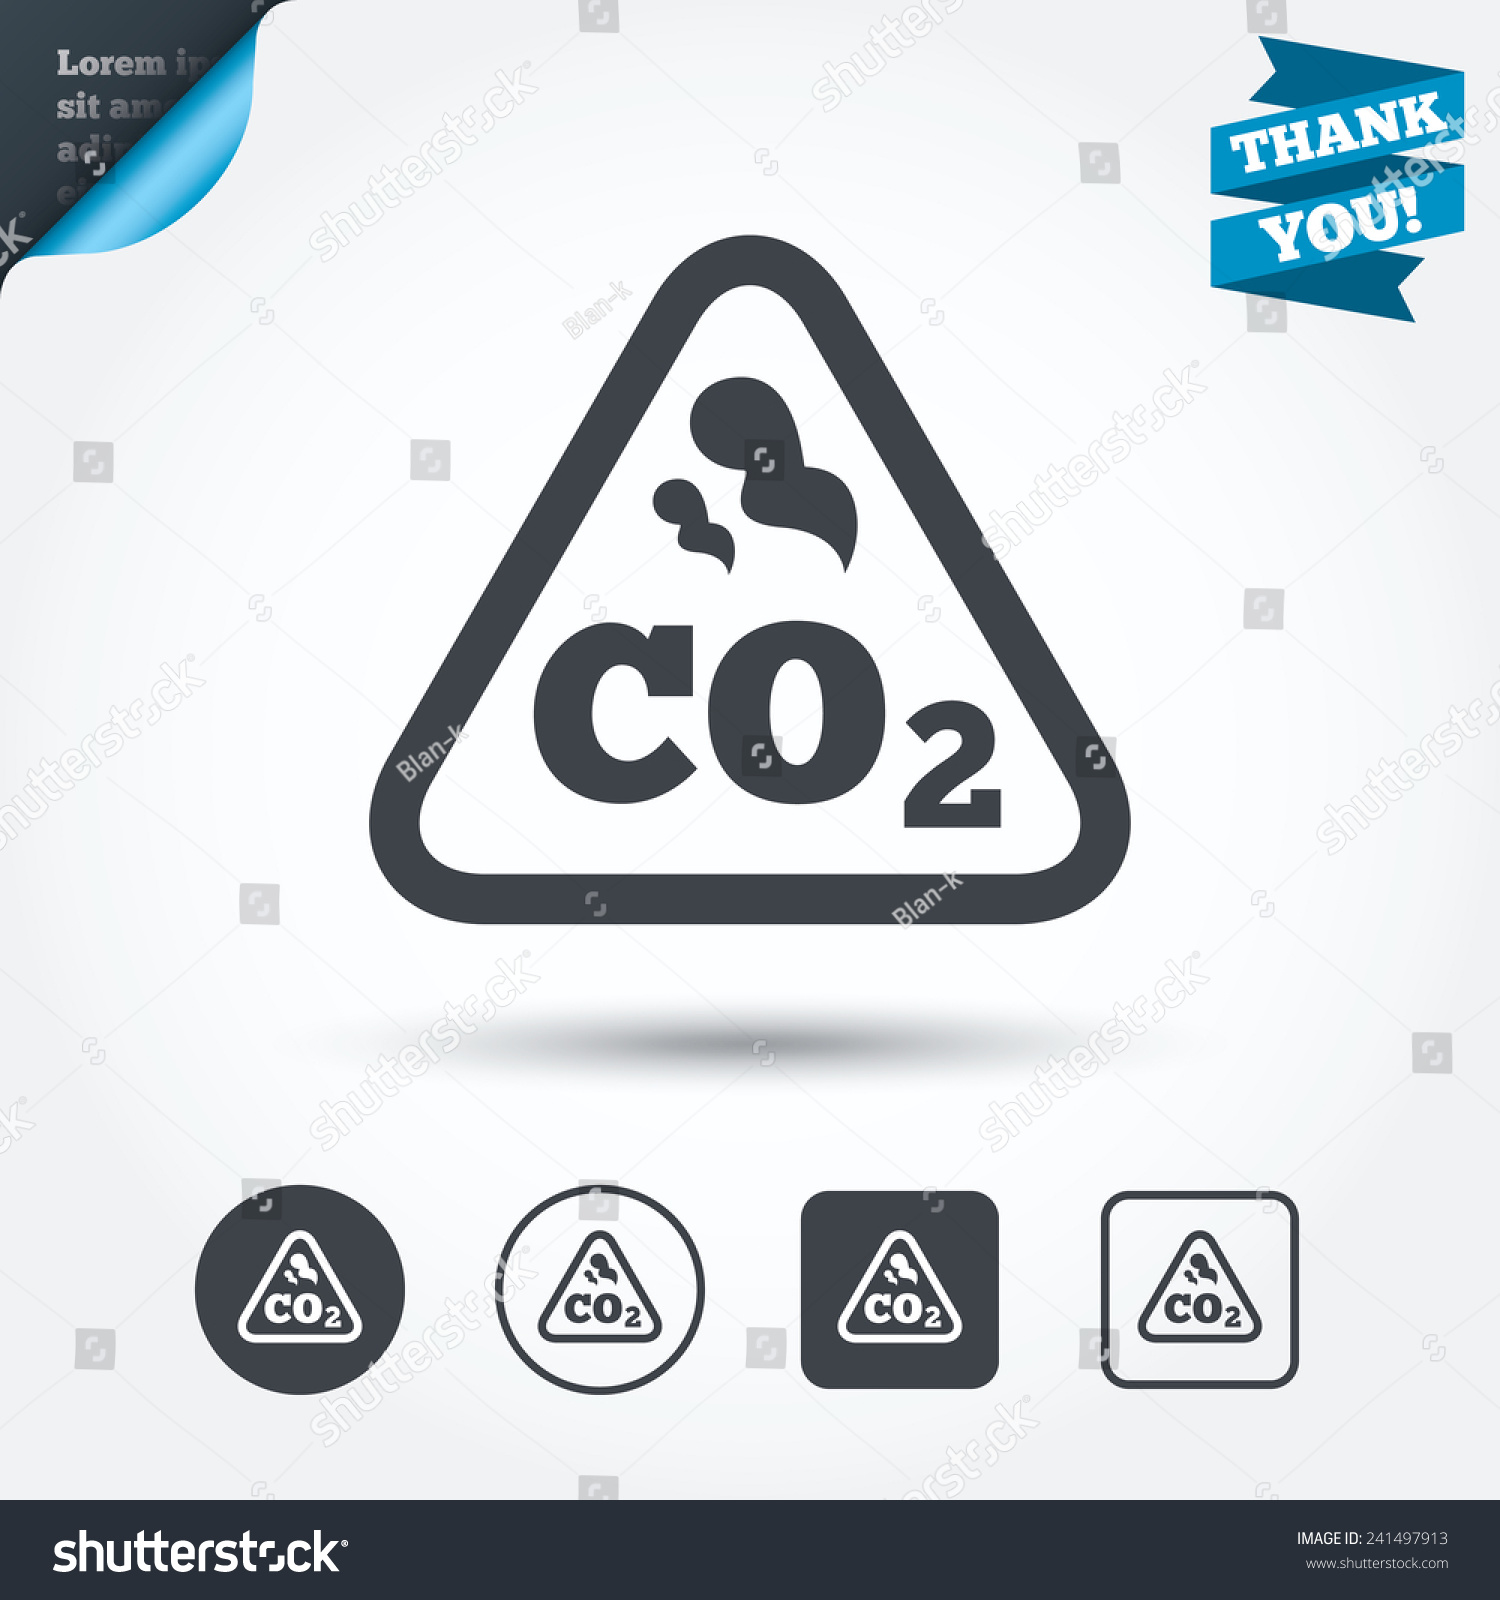 Carbon dioxide periodic table symbol unclog toilets diagram chemistry symbols with formula on positioning map free auto wiring stock vector co carbon dioxide formula sign icon chemistry symbol circle and square gamestrikefo Image collections